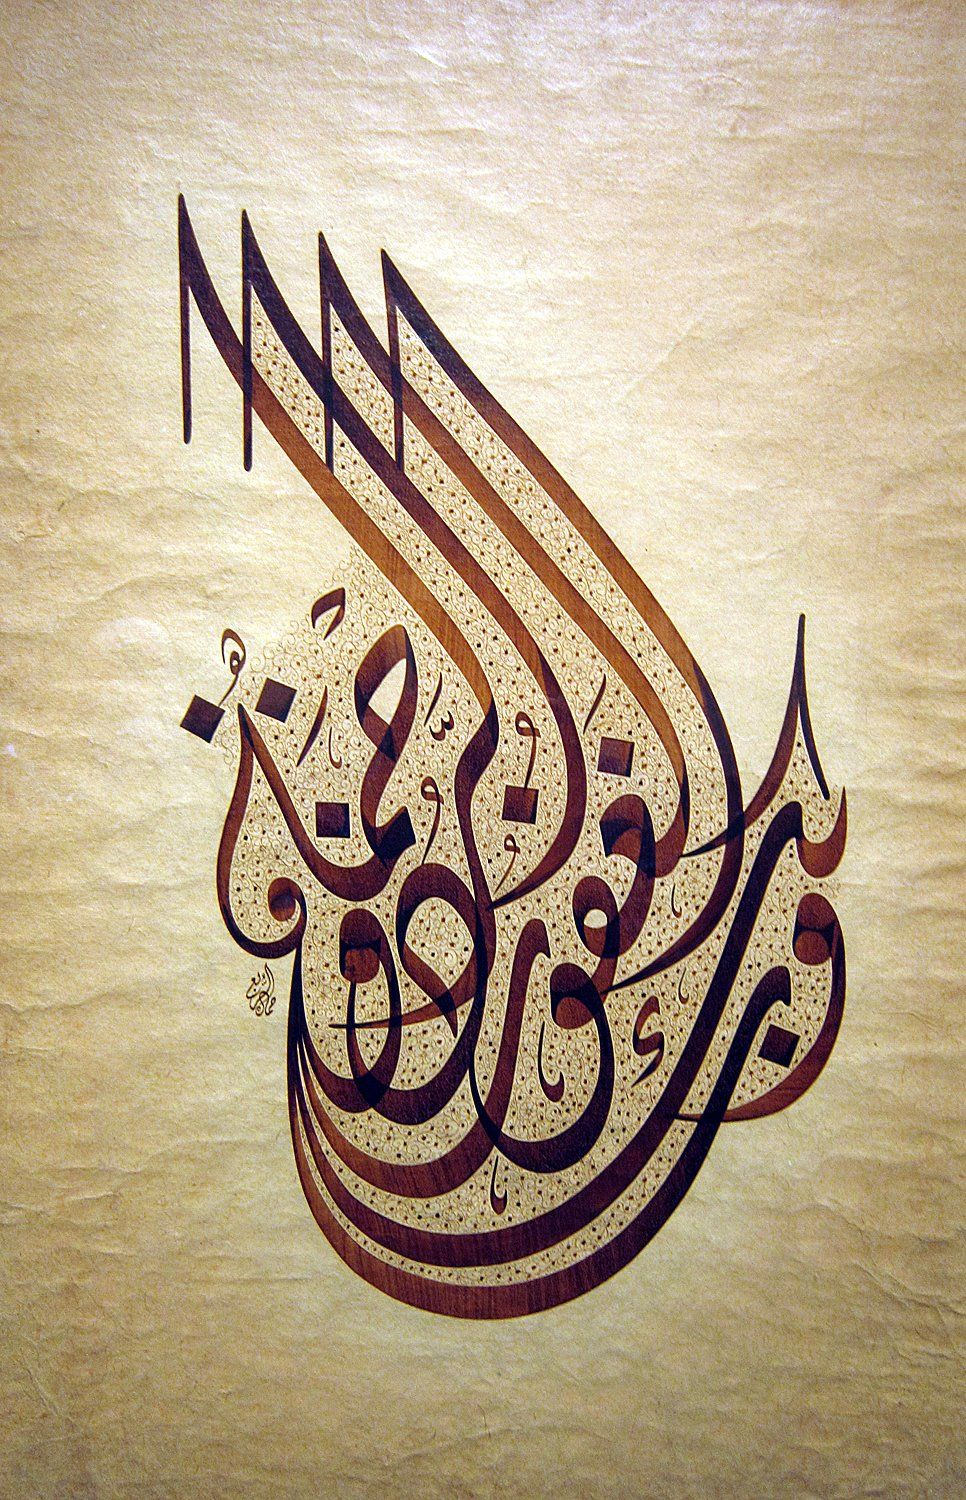 sharjah calligraphy biennial 2012 | typo | pinterest | sharjah